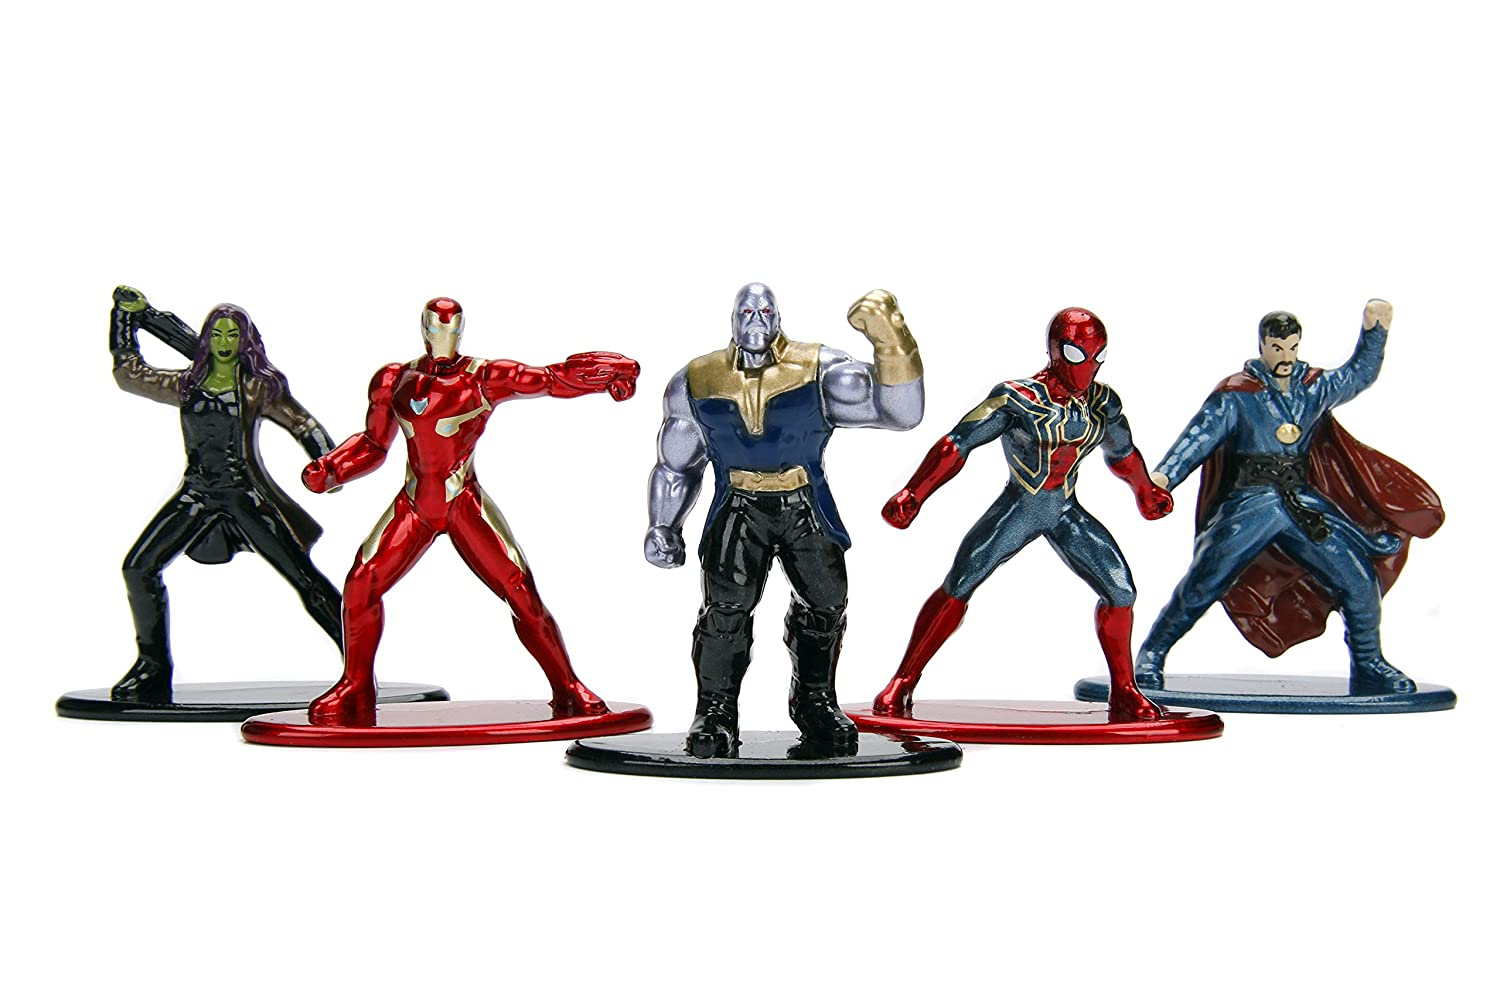 Nano Metalfigs Marvel Avengers Movie Infinity War Wave 1 Metals Die-Cast Collectible Toy Figures 1.65 Multicolor 1.65 Jada Toys 99919